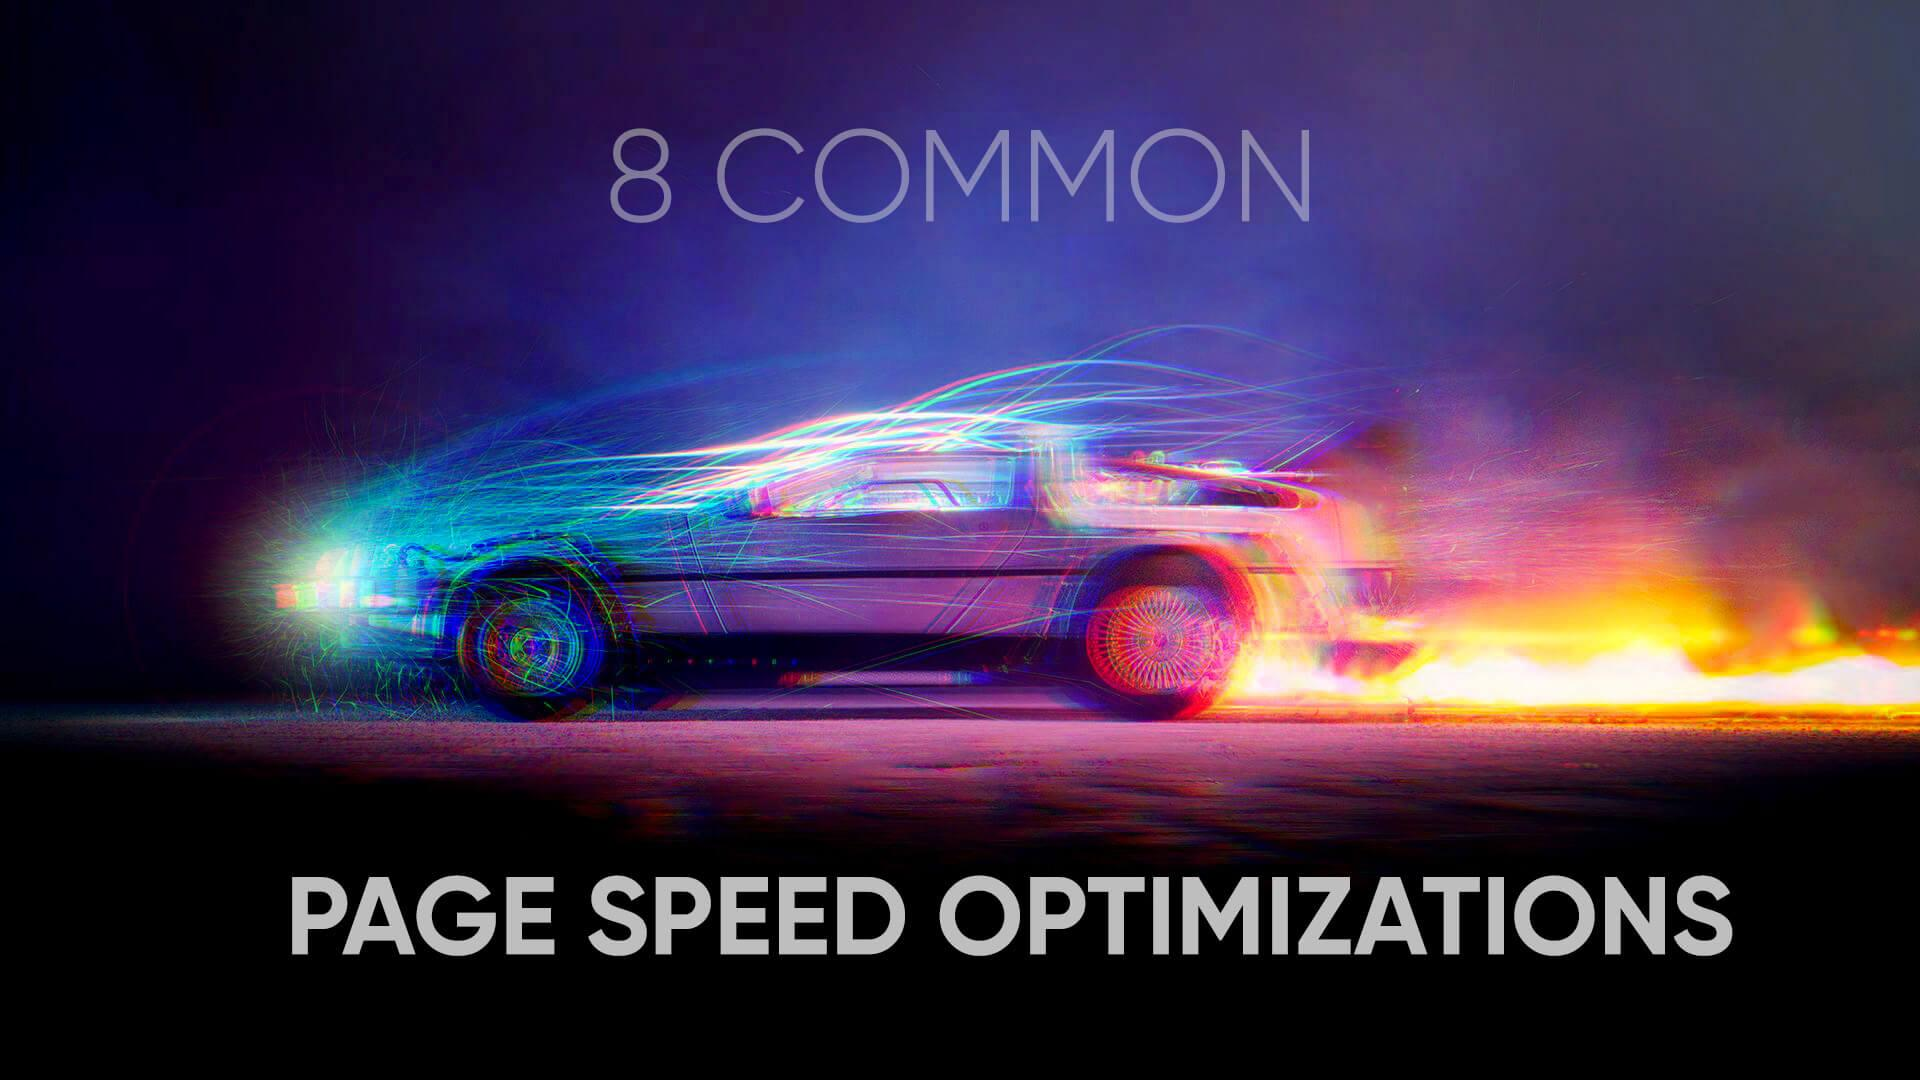 8 Common Page Speed Optimizations